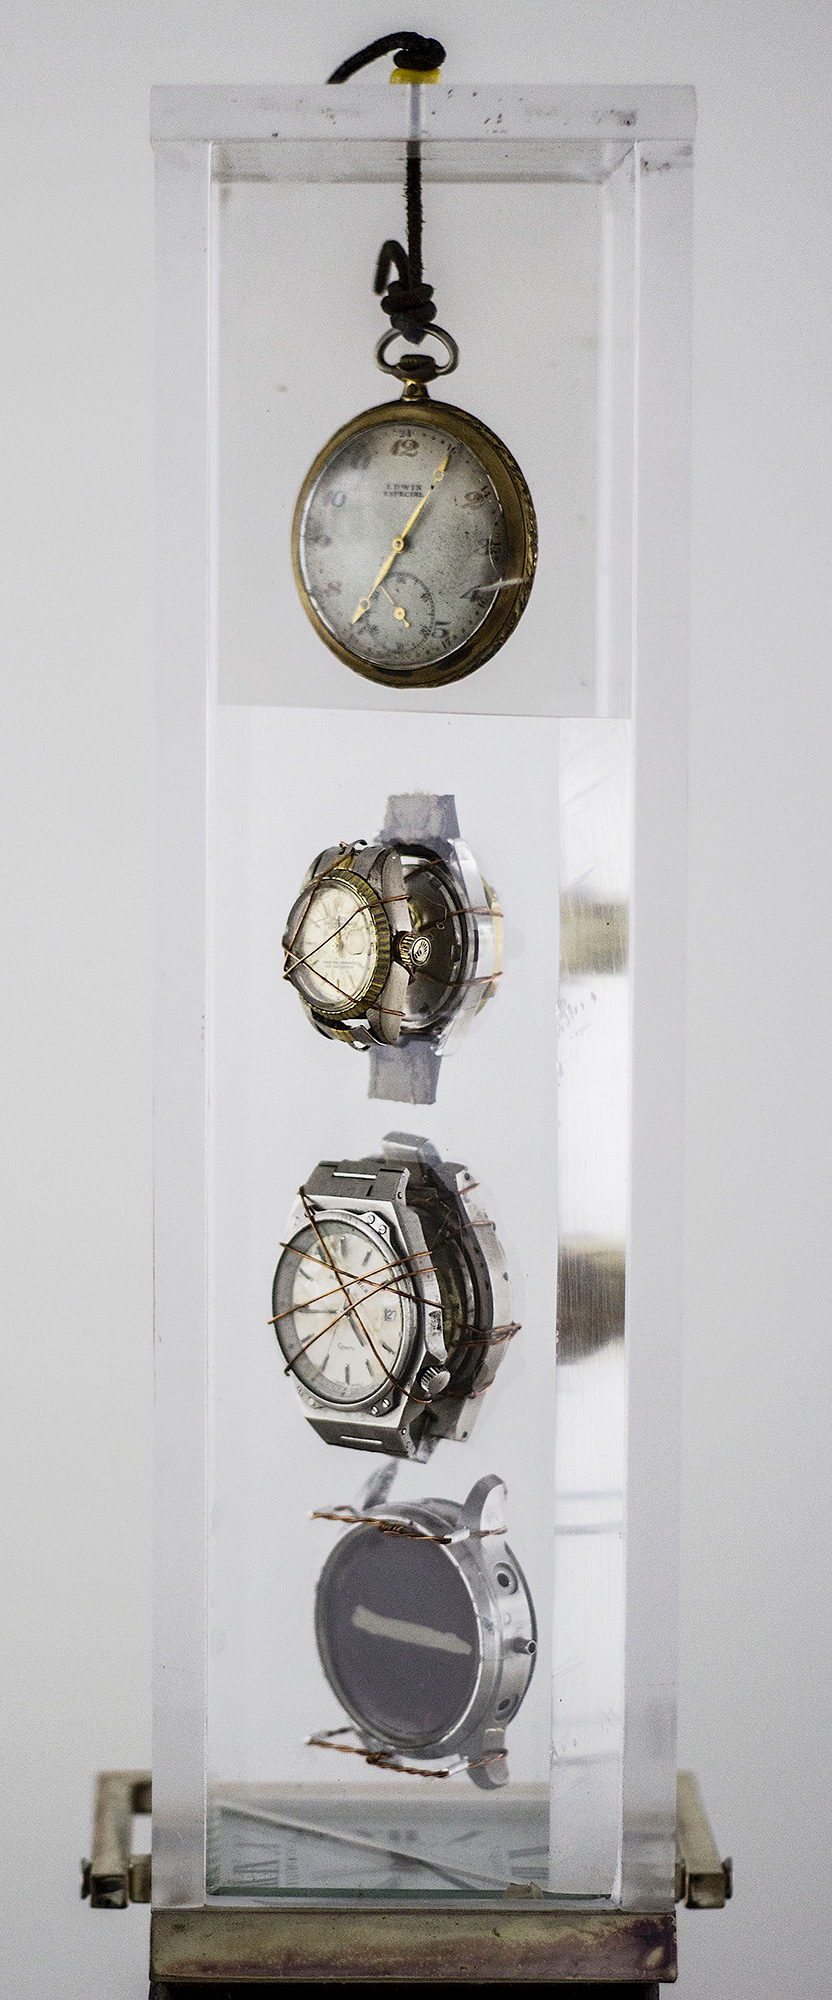 """Time"" - Sculpture, Metal base, burned wood, Watches, Acrylic Box - 4""x4""x67-1/2"" - © Flavio Bisciotti"